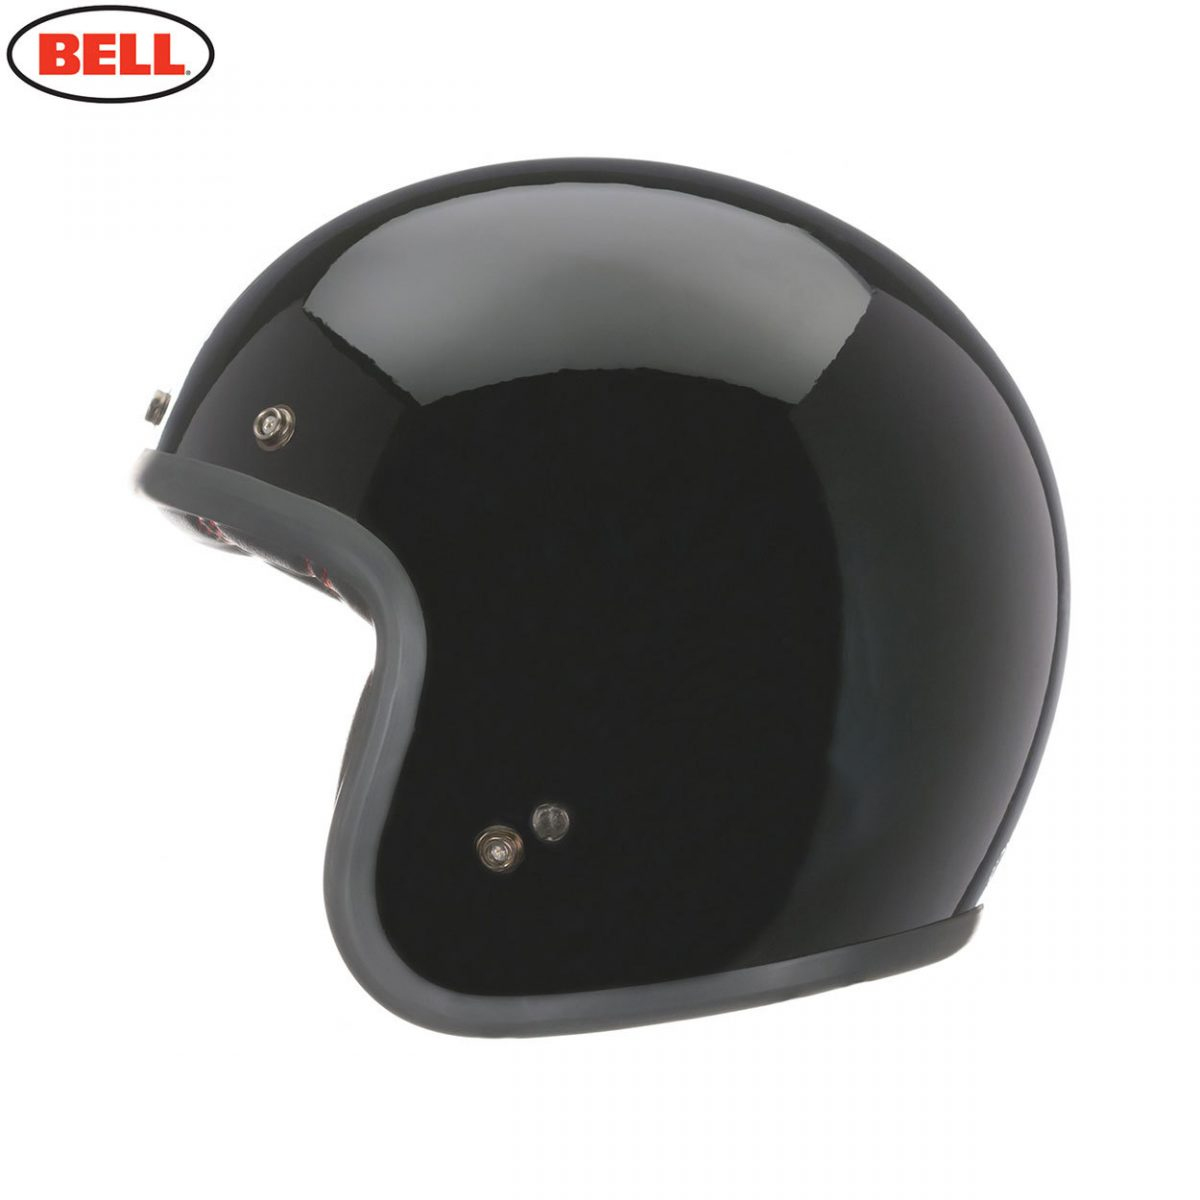 Bell Cruiser Custom 500 Adult Helmet Solid Black